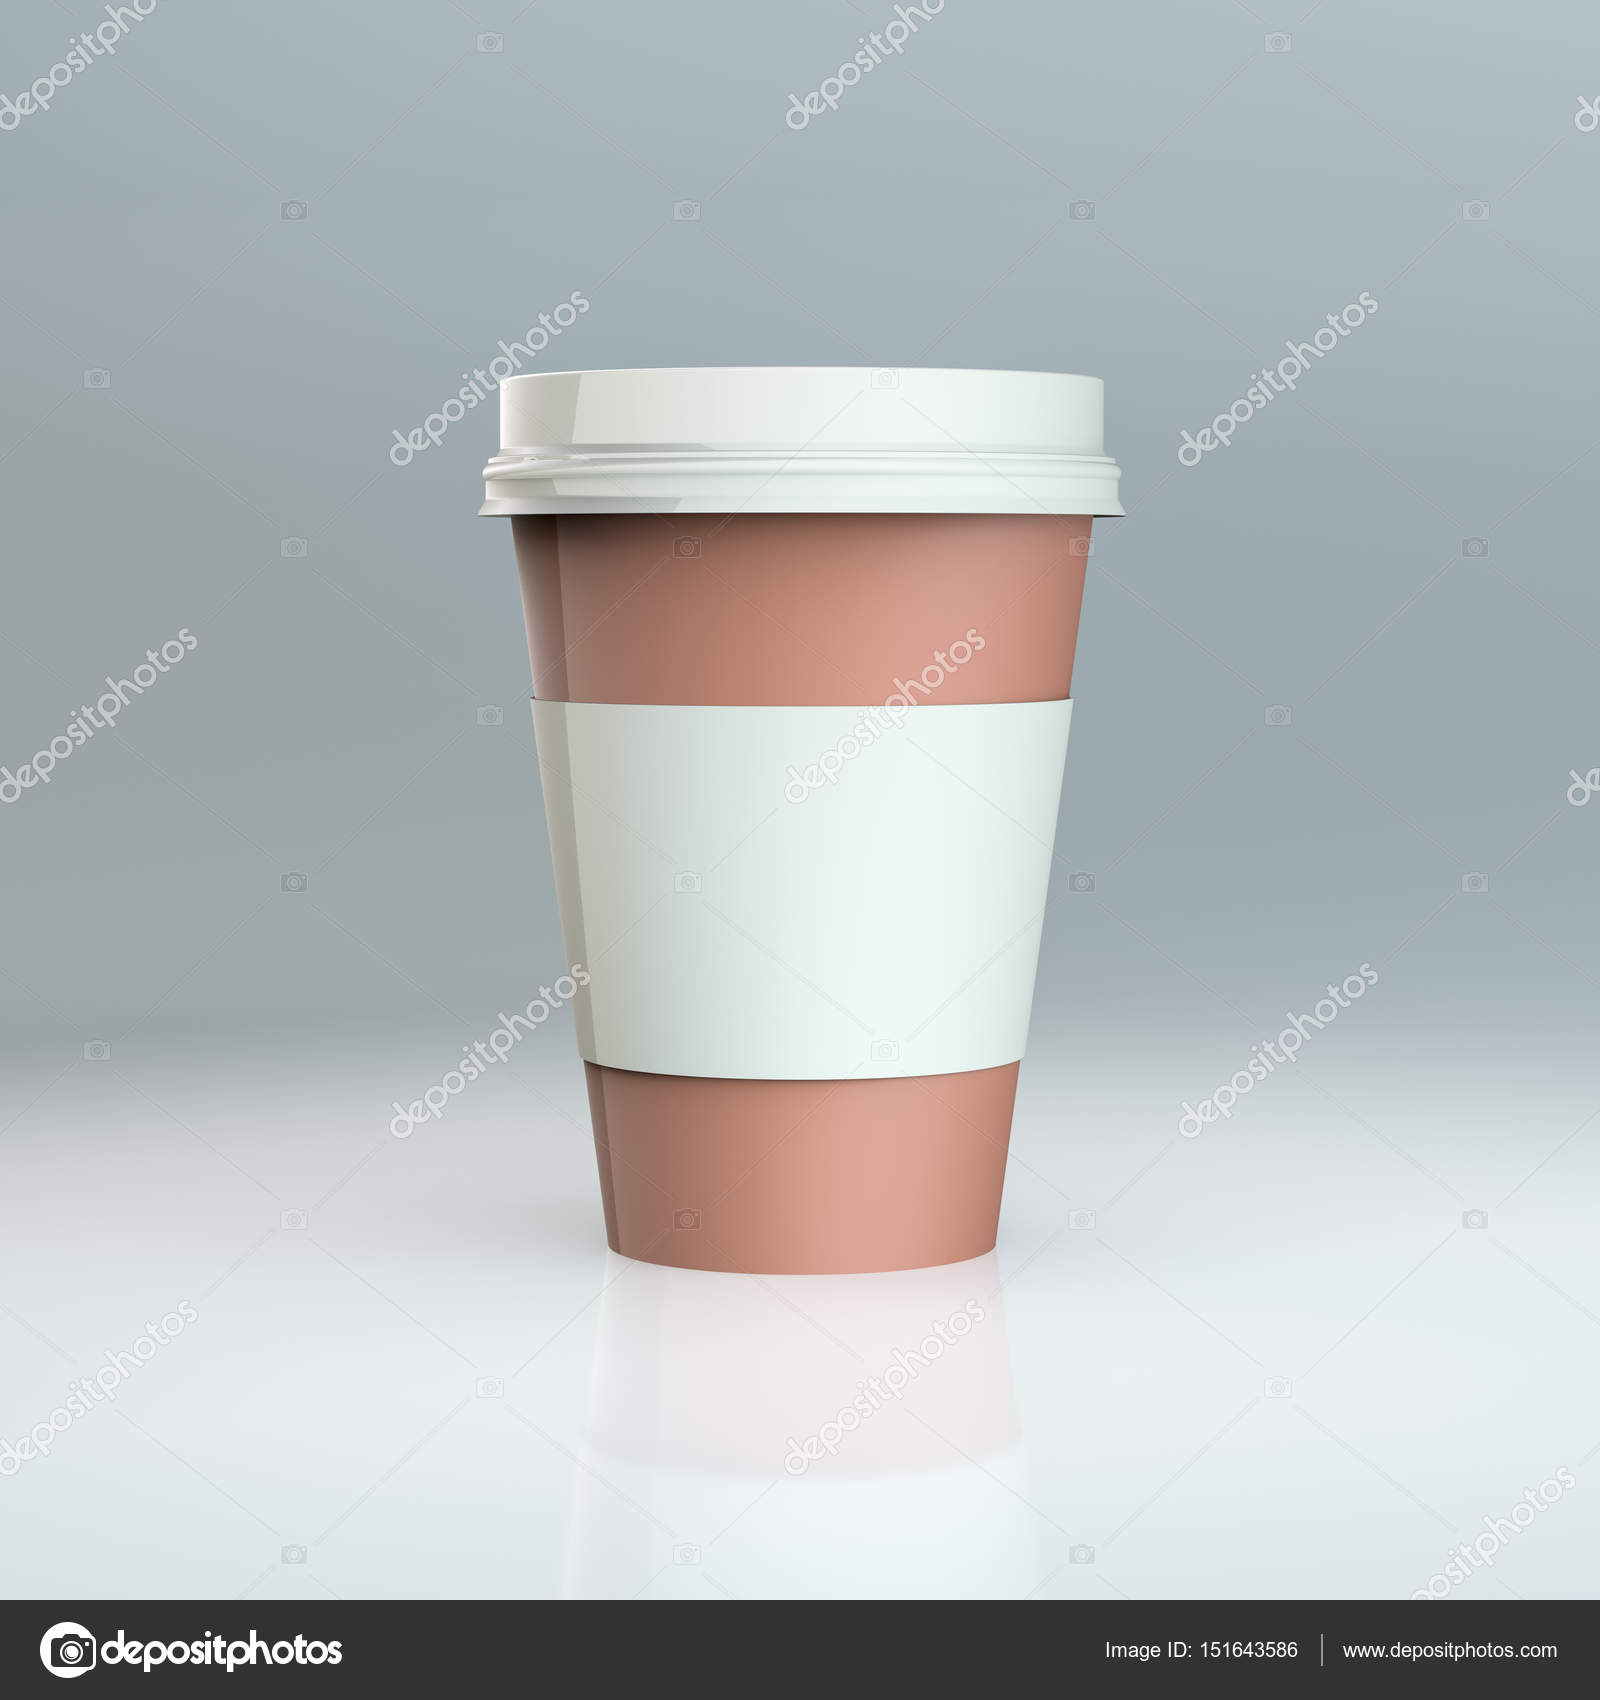 Plastik Kaffee Tasse Vorlagen. 3D illustration — Stockfoto ...